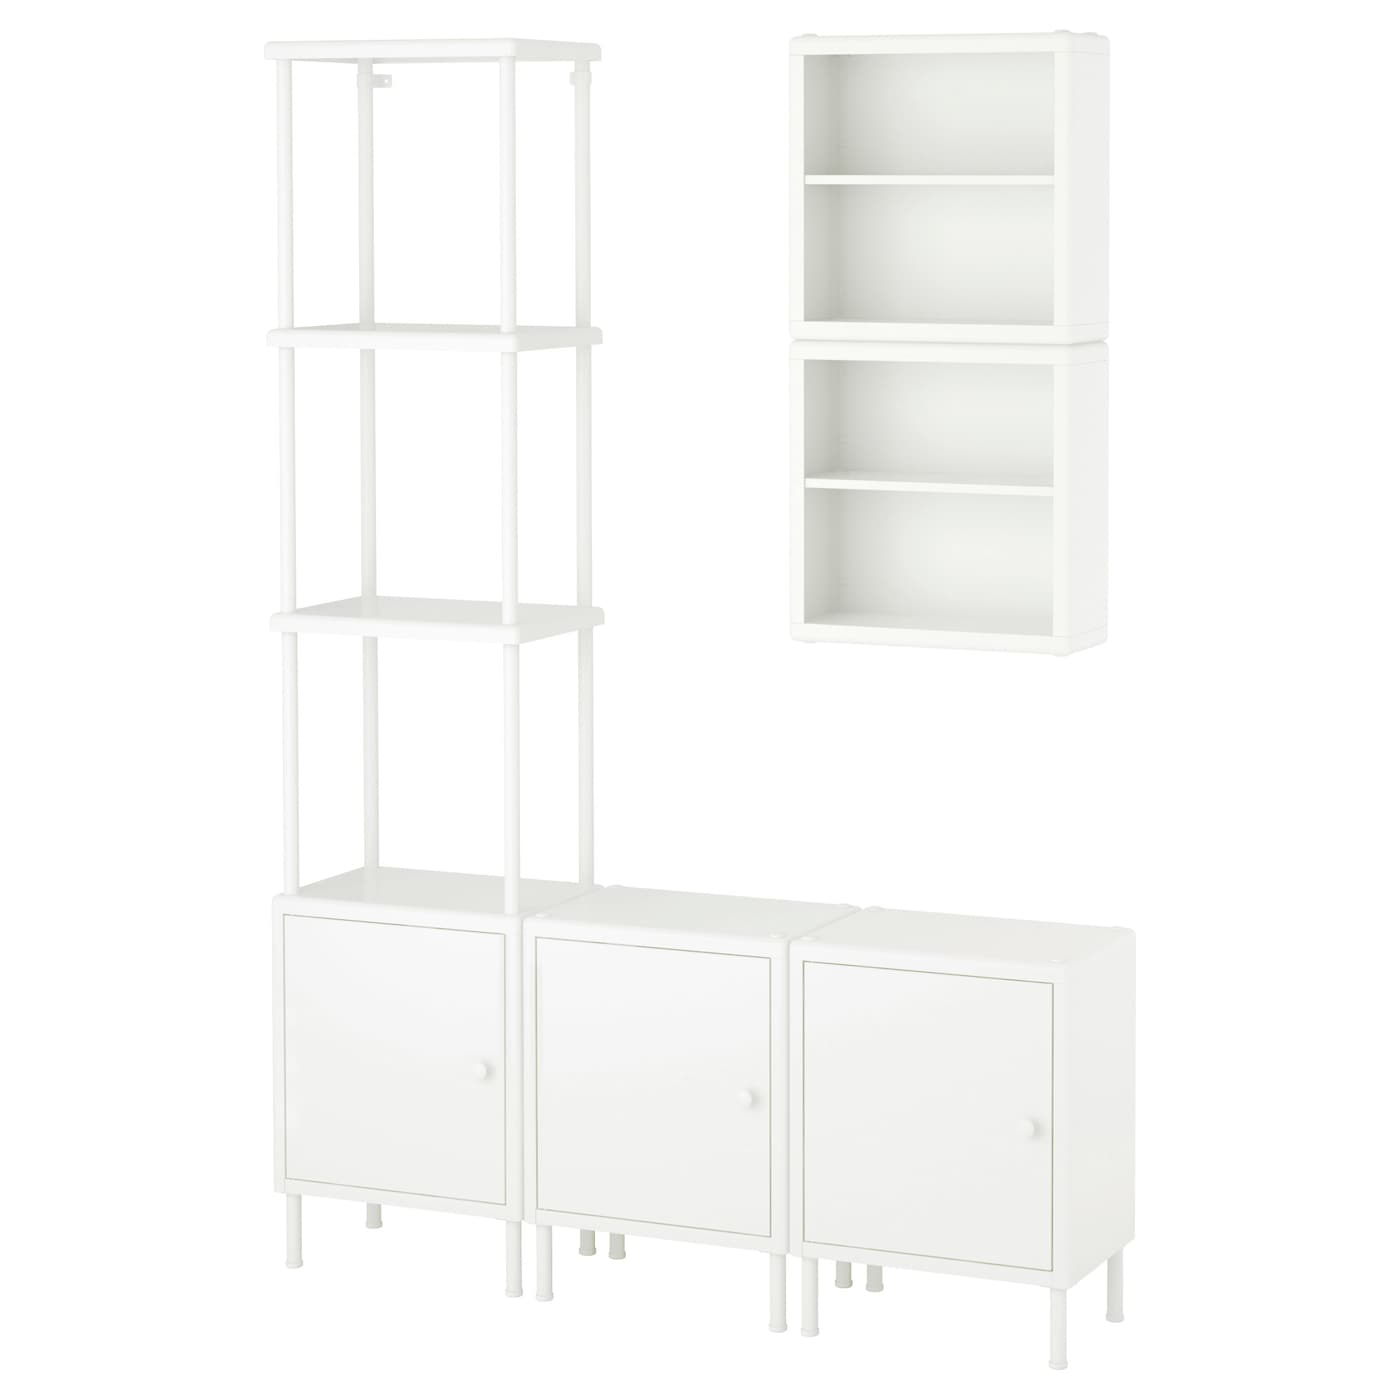 IKEA DYNAN shelving unit with 3 cabinets Perfect in a small bathroom.